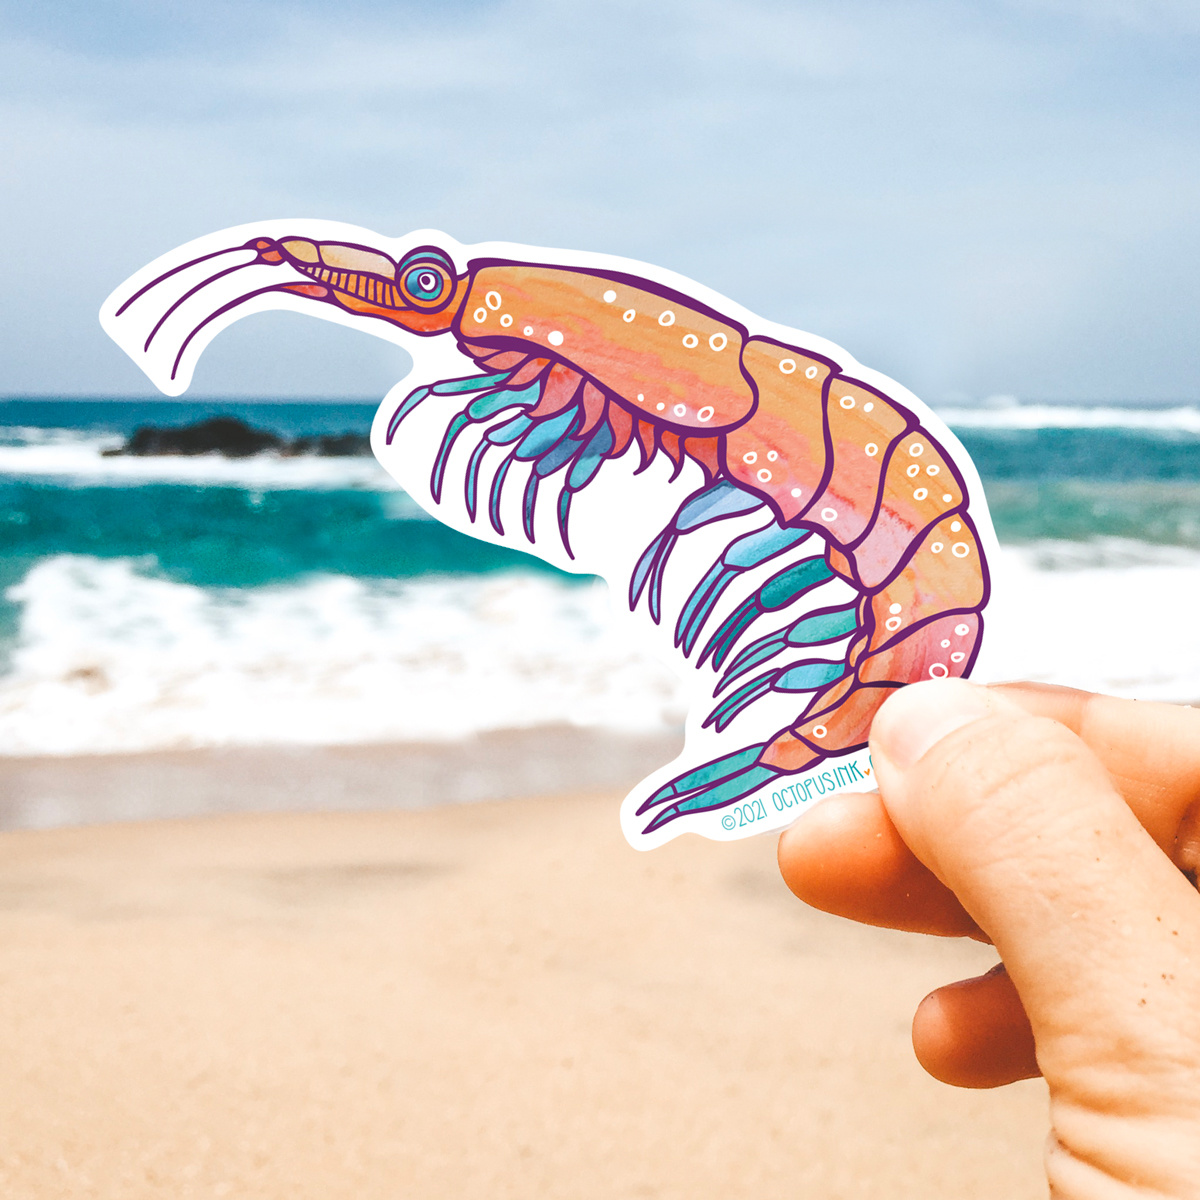 Krill- Decal